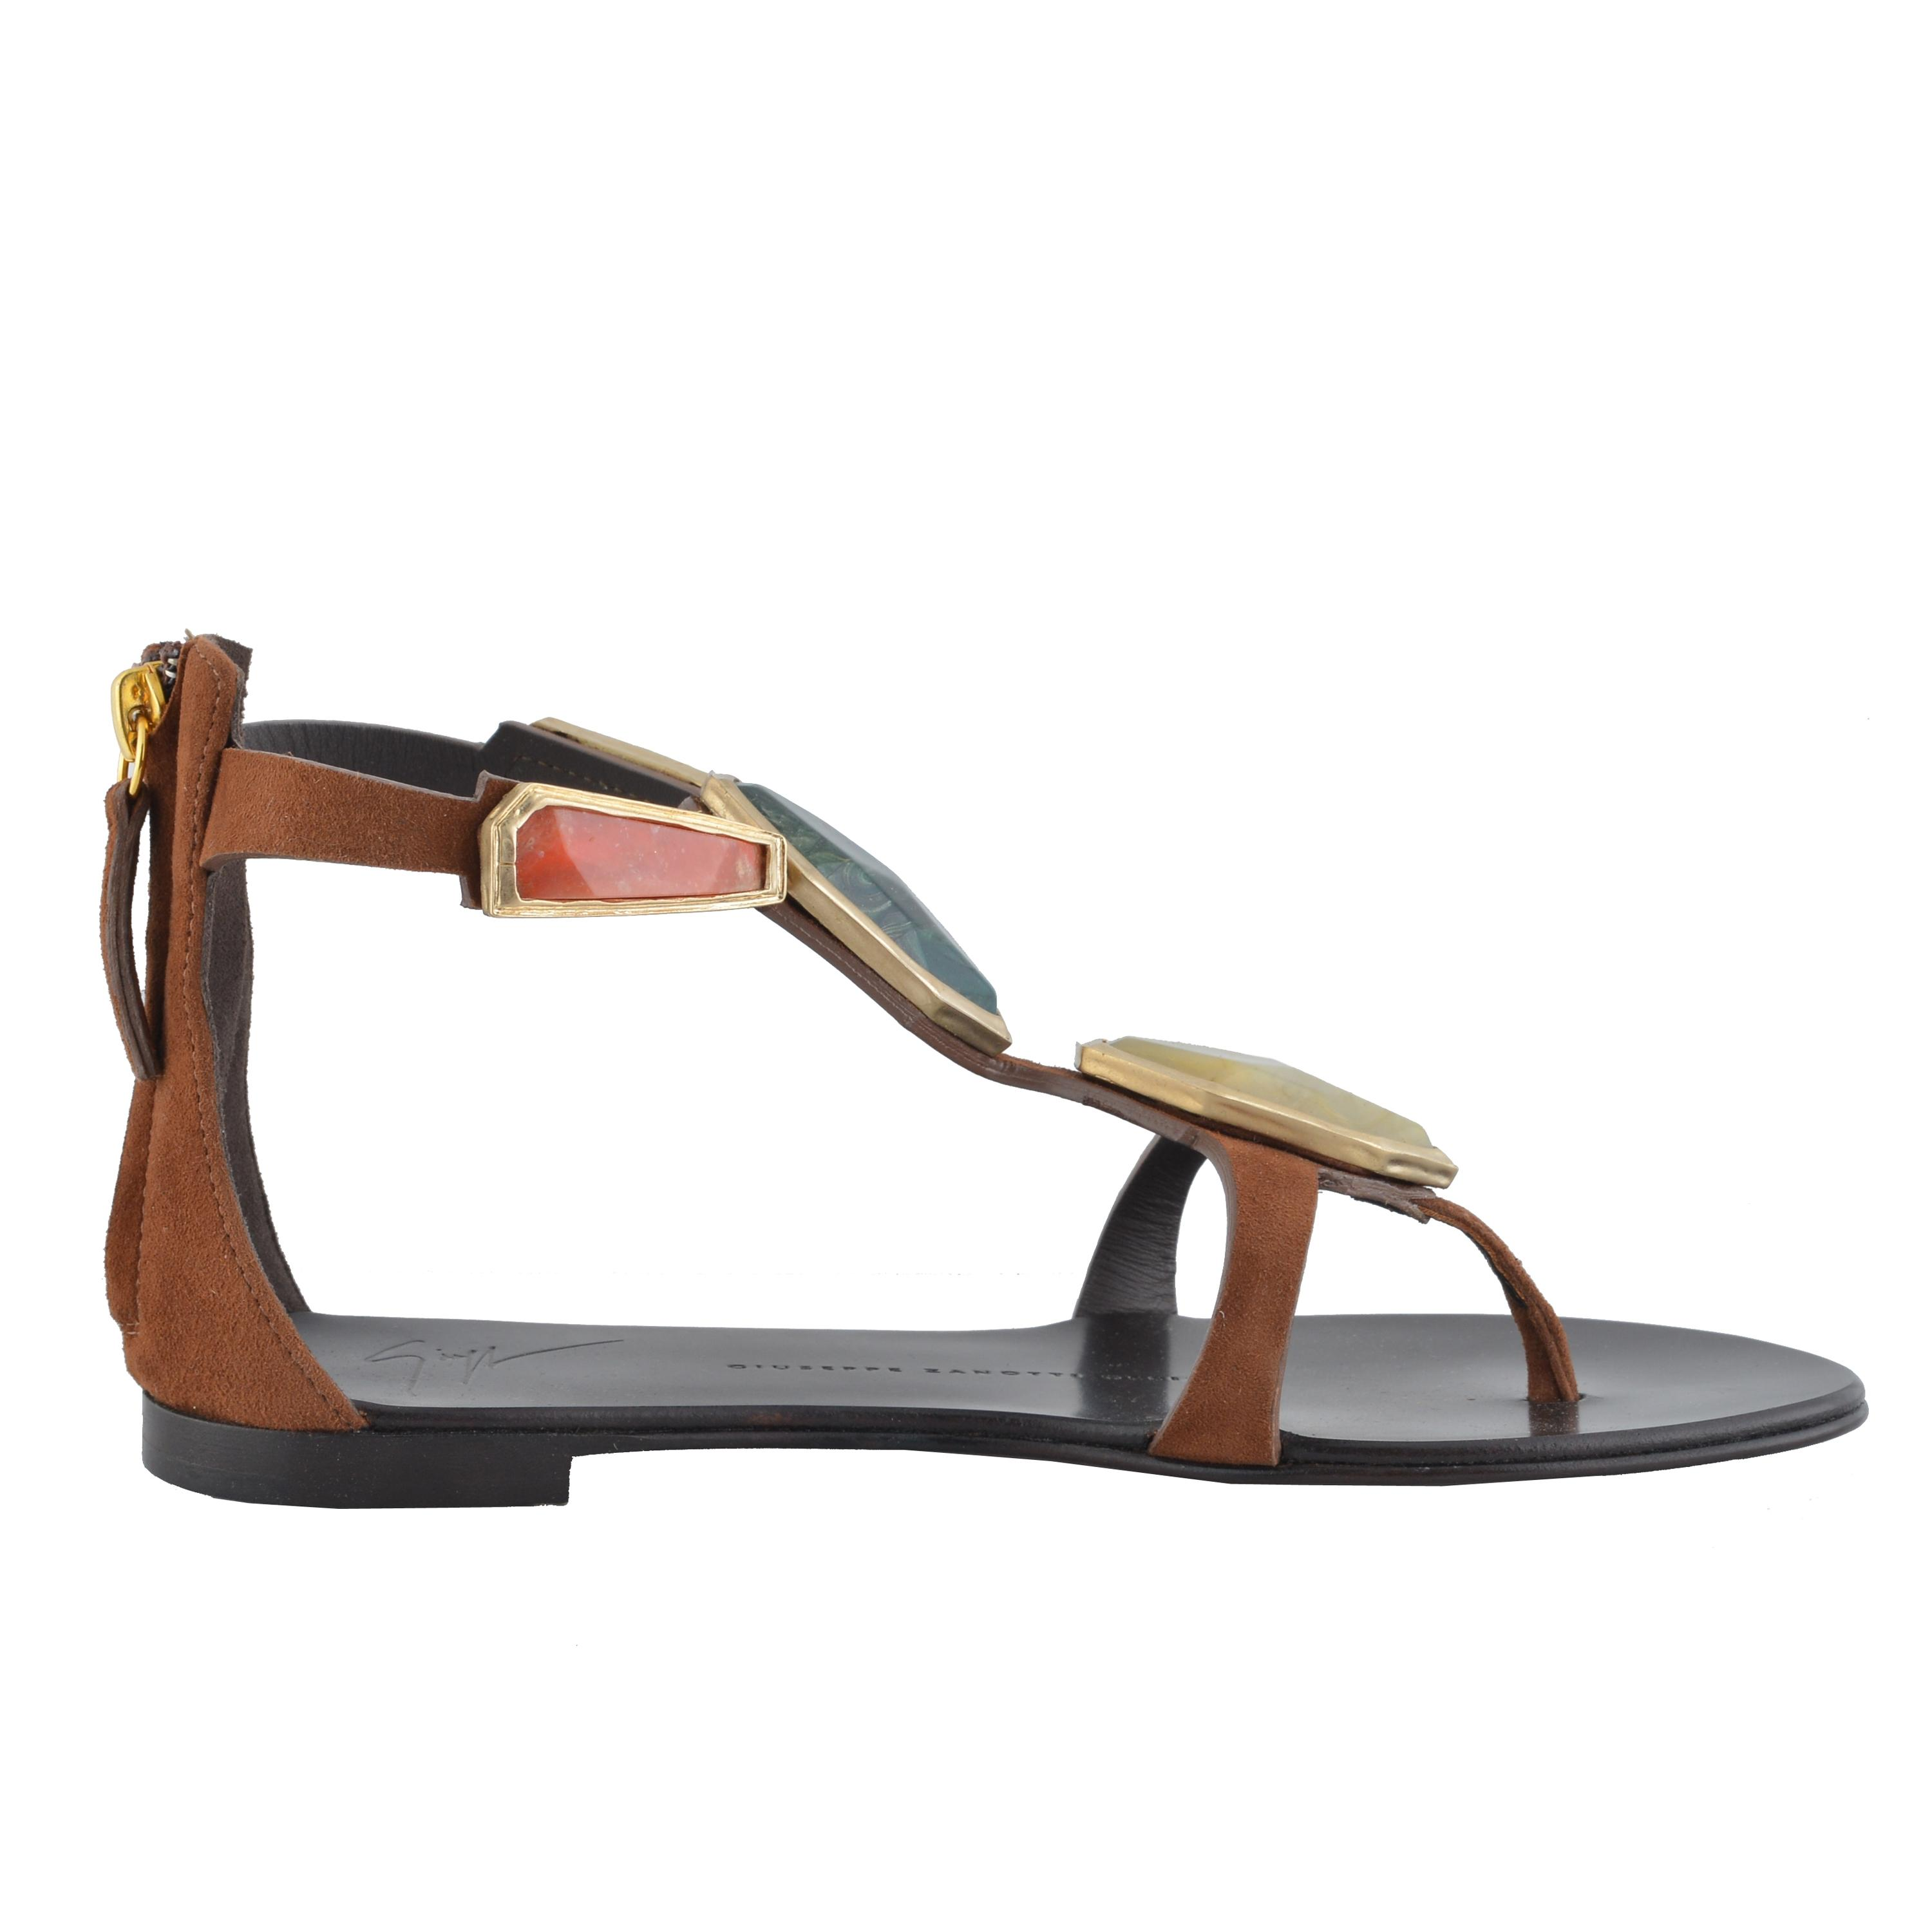 50fa81fe2df0 ... Giuseppe Zanotti Brown Design Women s Suede Leather Leather Leather  Stone Decorated Flat Sandals Size US 5 ...